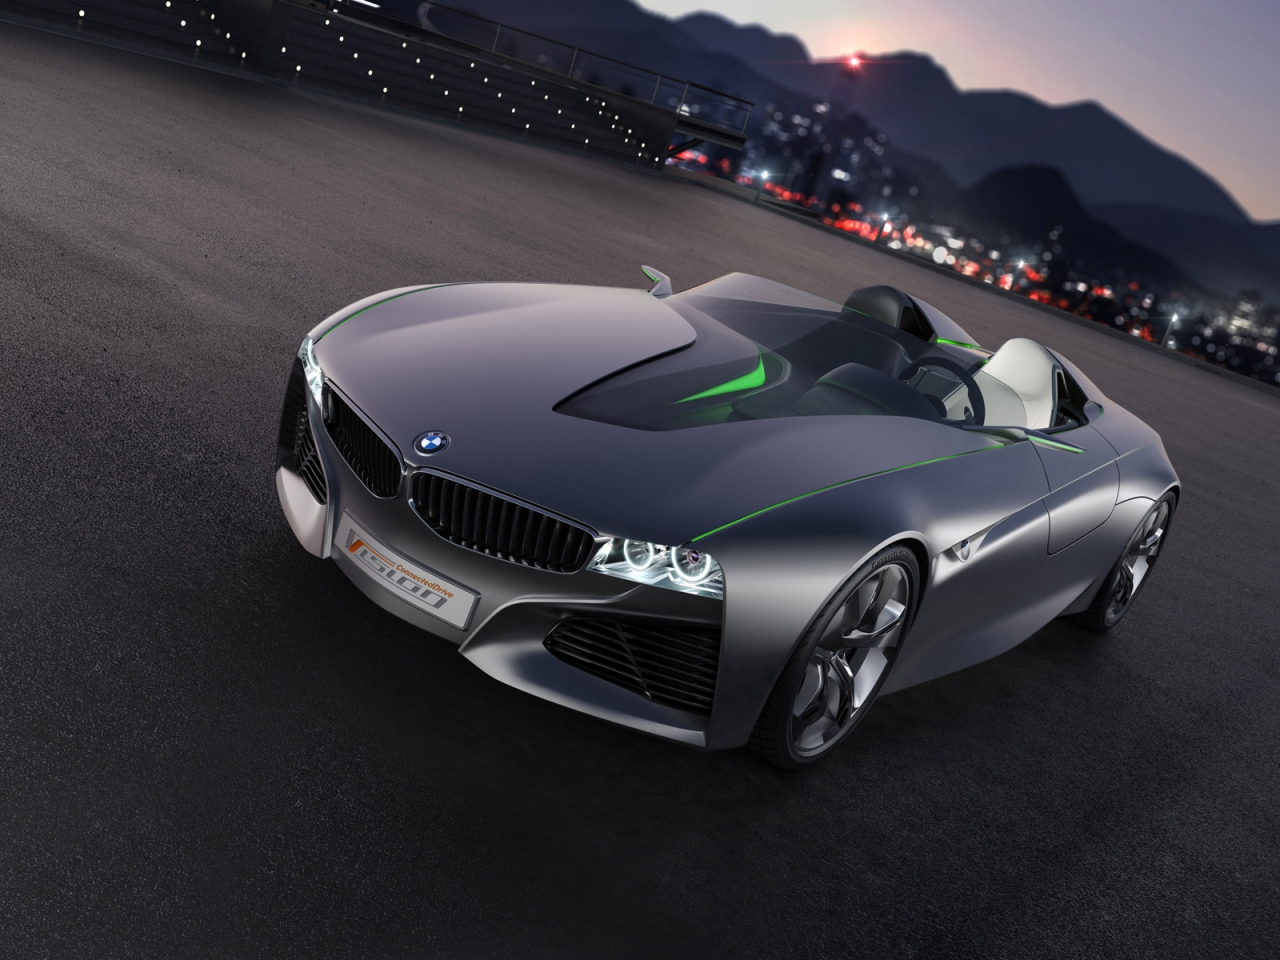 BMW Vision Connected Drive Concept for 1280 x 960 resolution